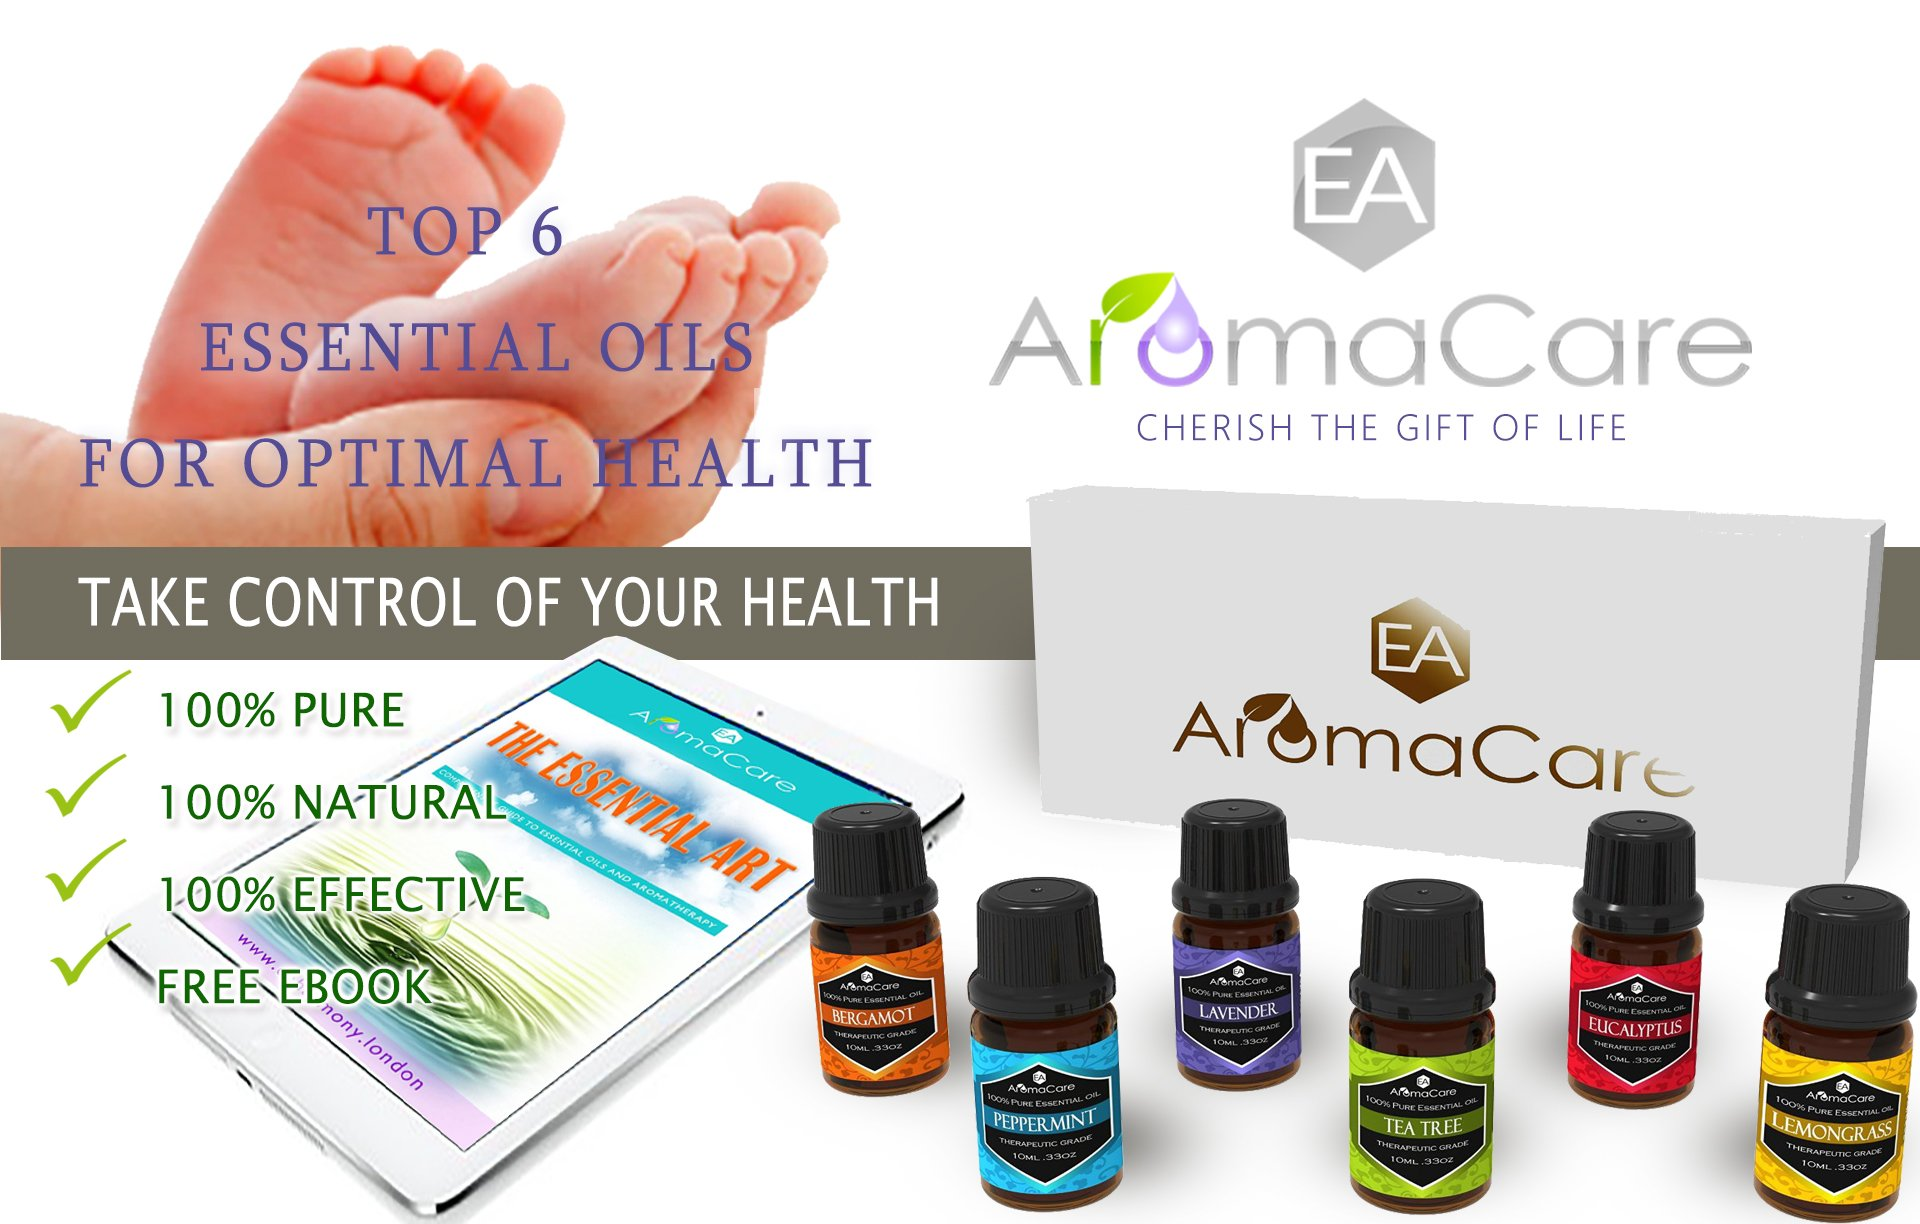 Aromatherapy Essential Oils Gift Set in a EXCLUSIVE WHITE BOX (Lavender, Peppermint, Lemongrass, TeaTree, Eucalyptus, Bergamot) FREE Essential Oil Pendant and ebook by EA AromaCare (Image #2)